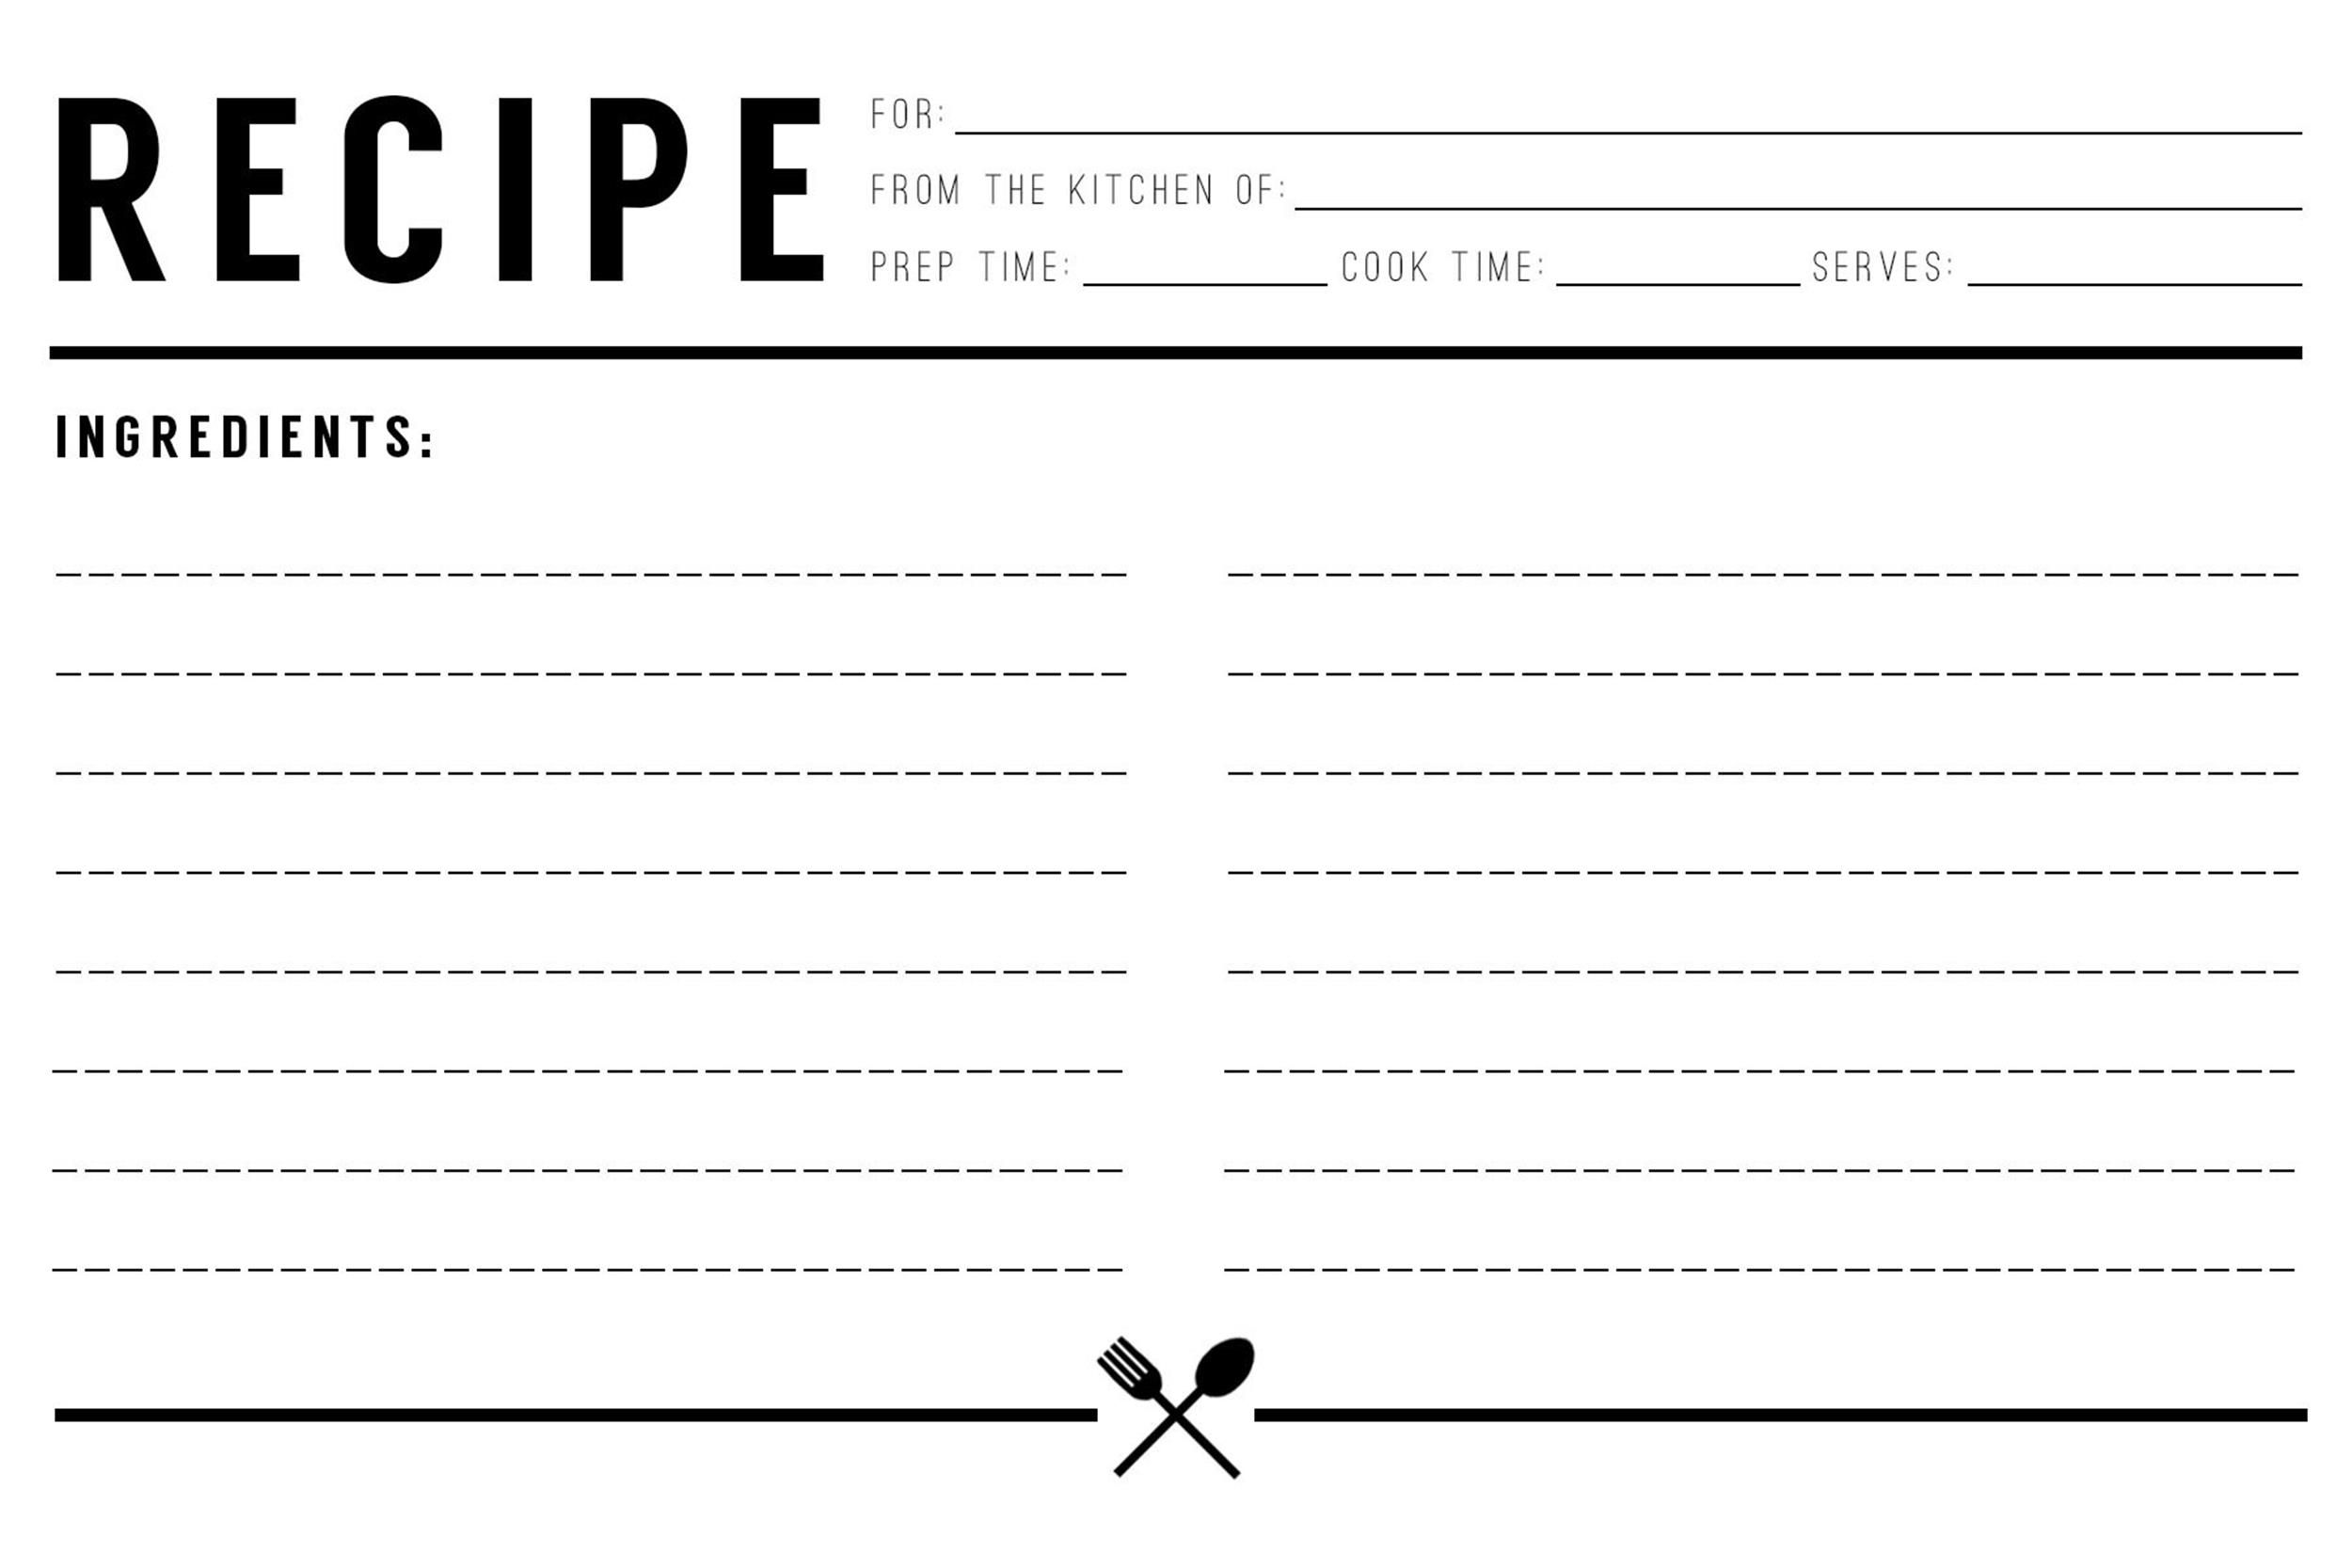 008 Marvelou Free Recipe Template For Word High Resolution  Book Editable Card Microsoft 4x6 PageFull